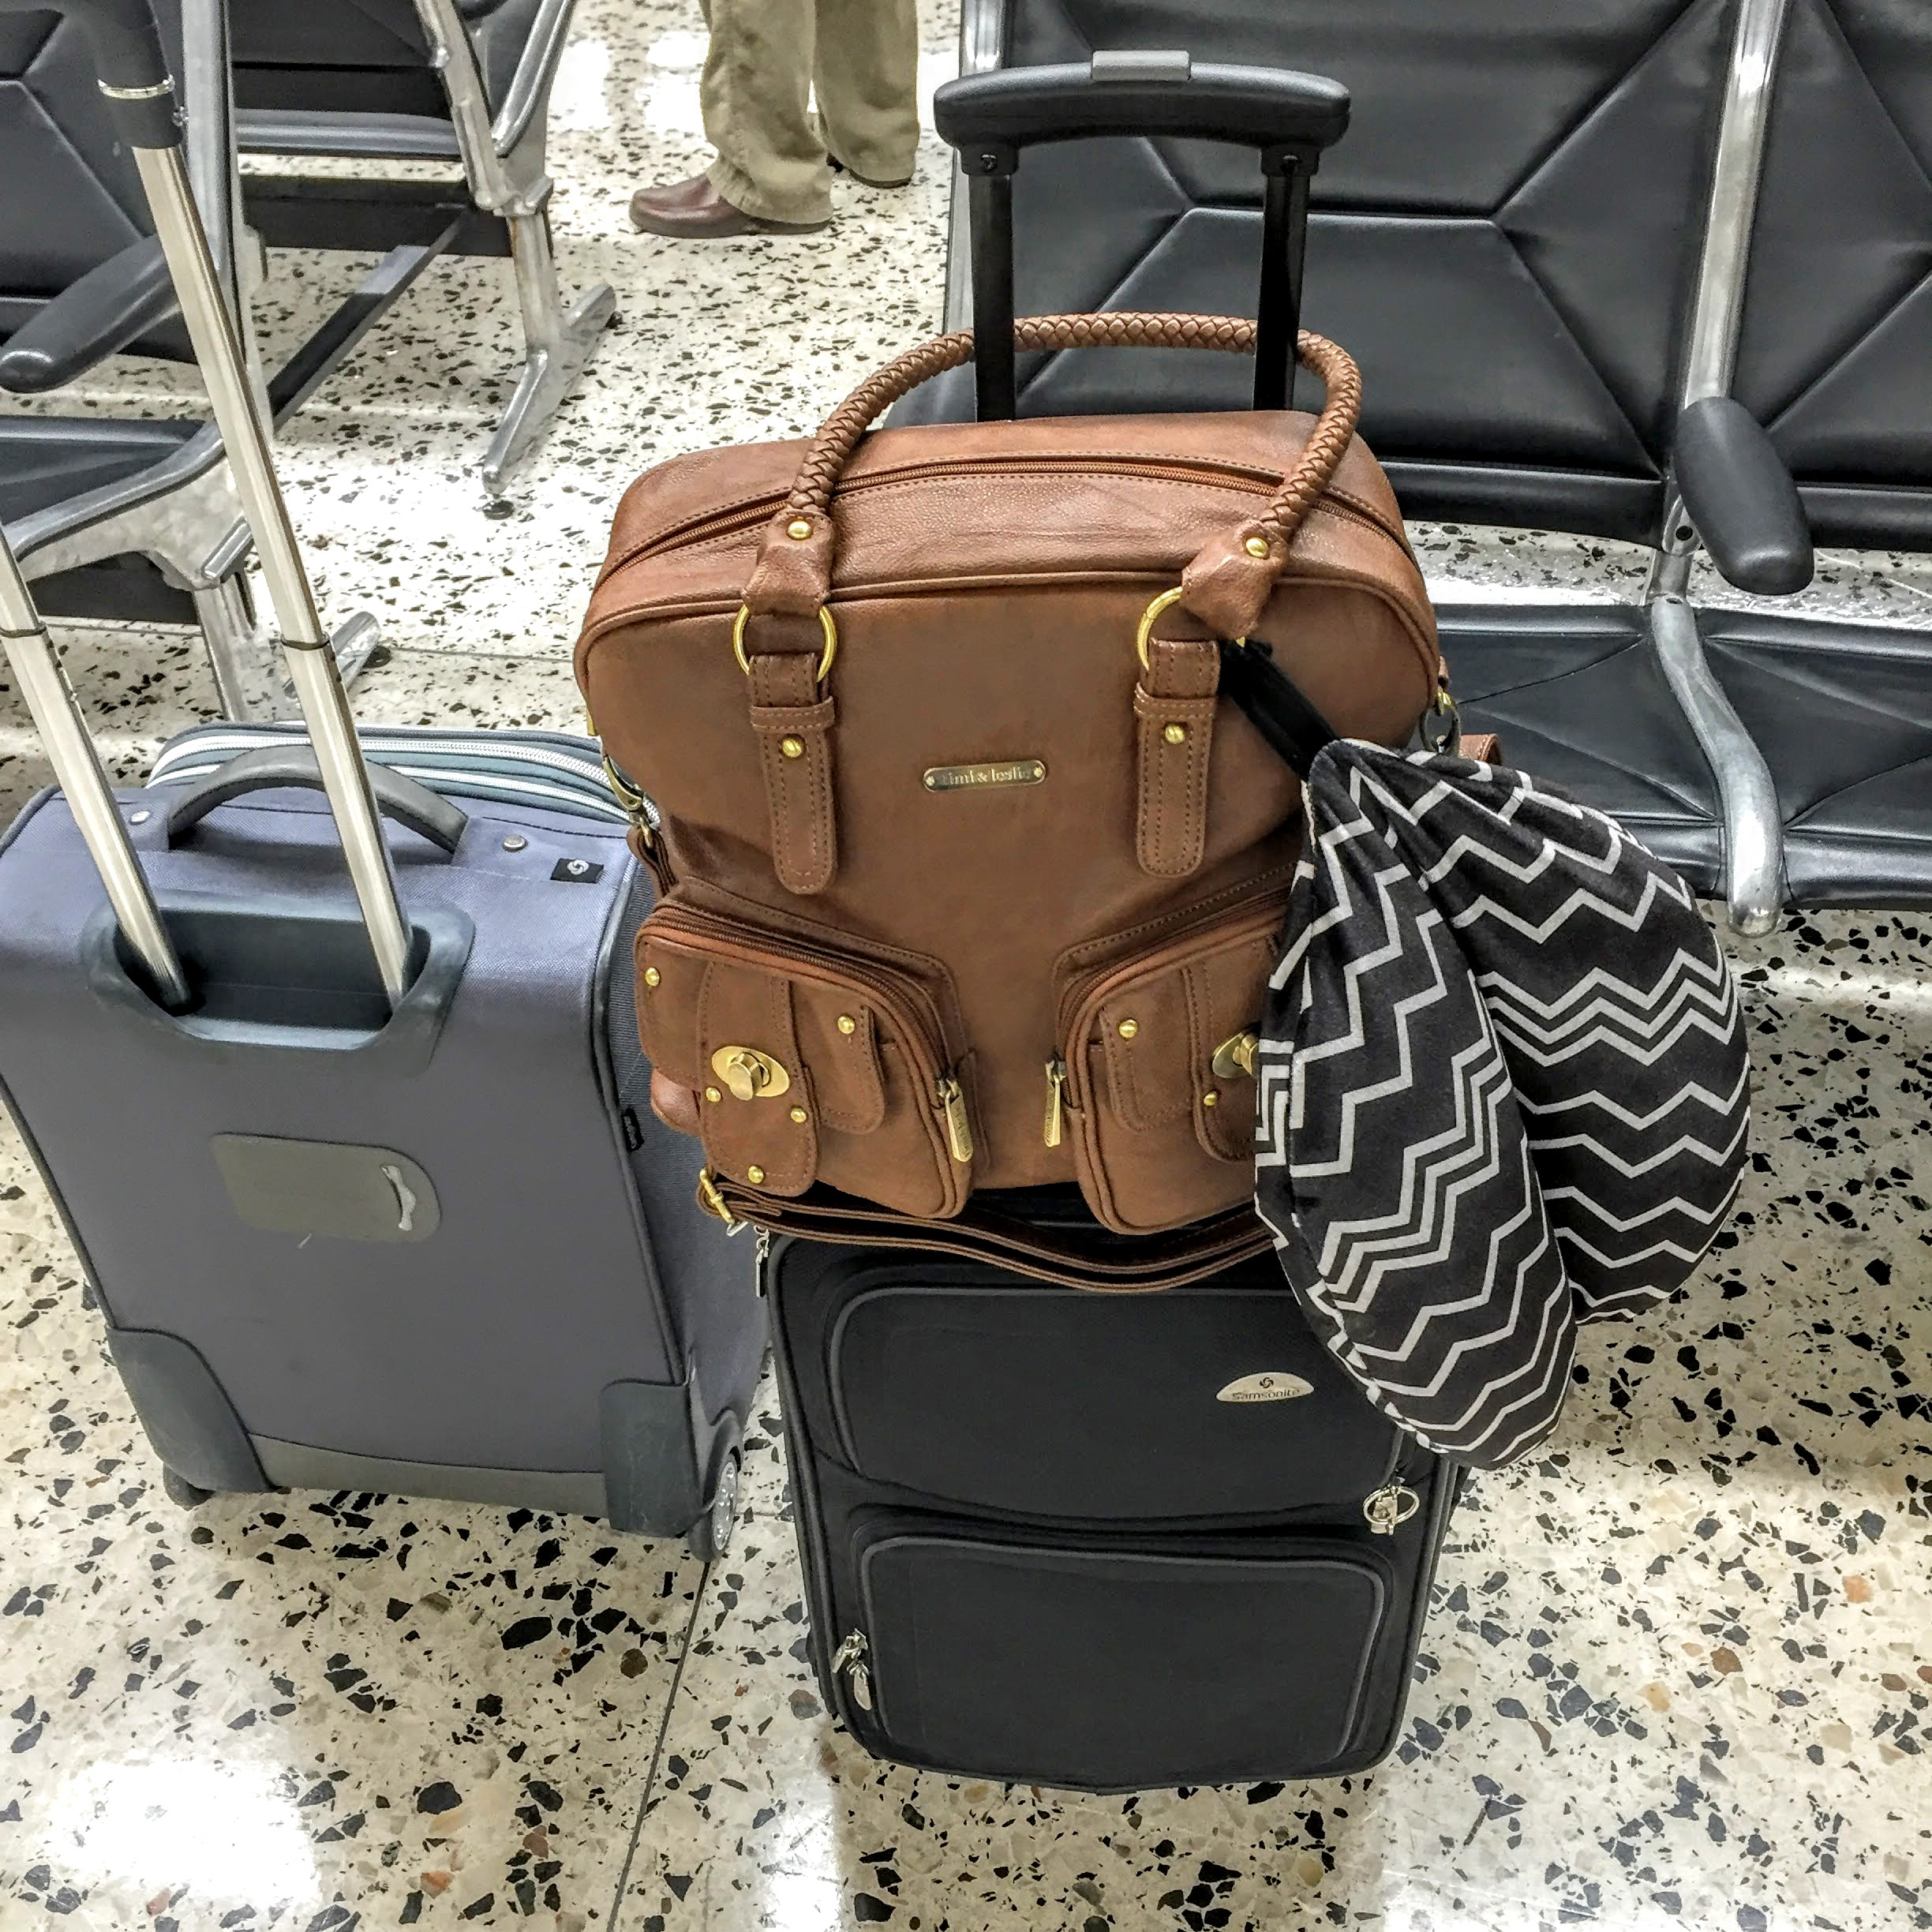 Timi & Leslie Diaper Bag // via Jitney's Journeys